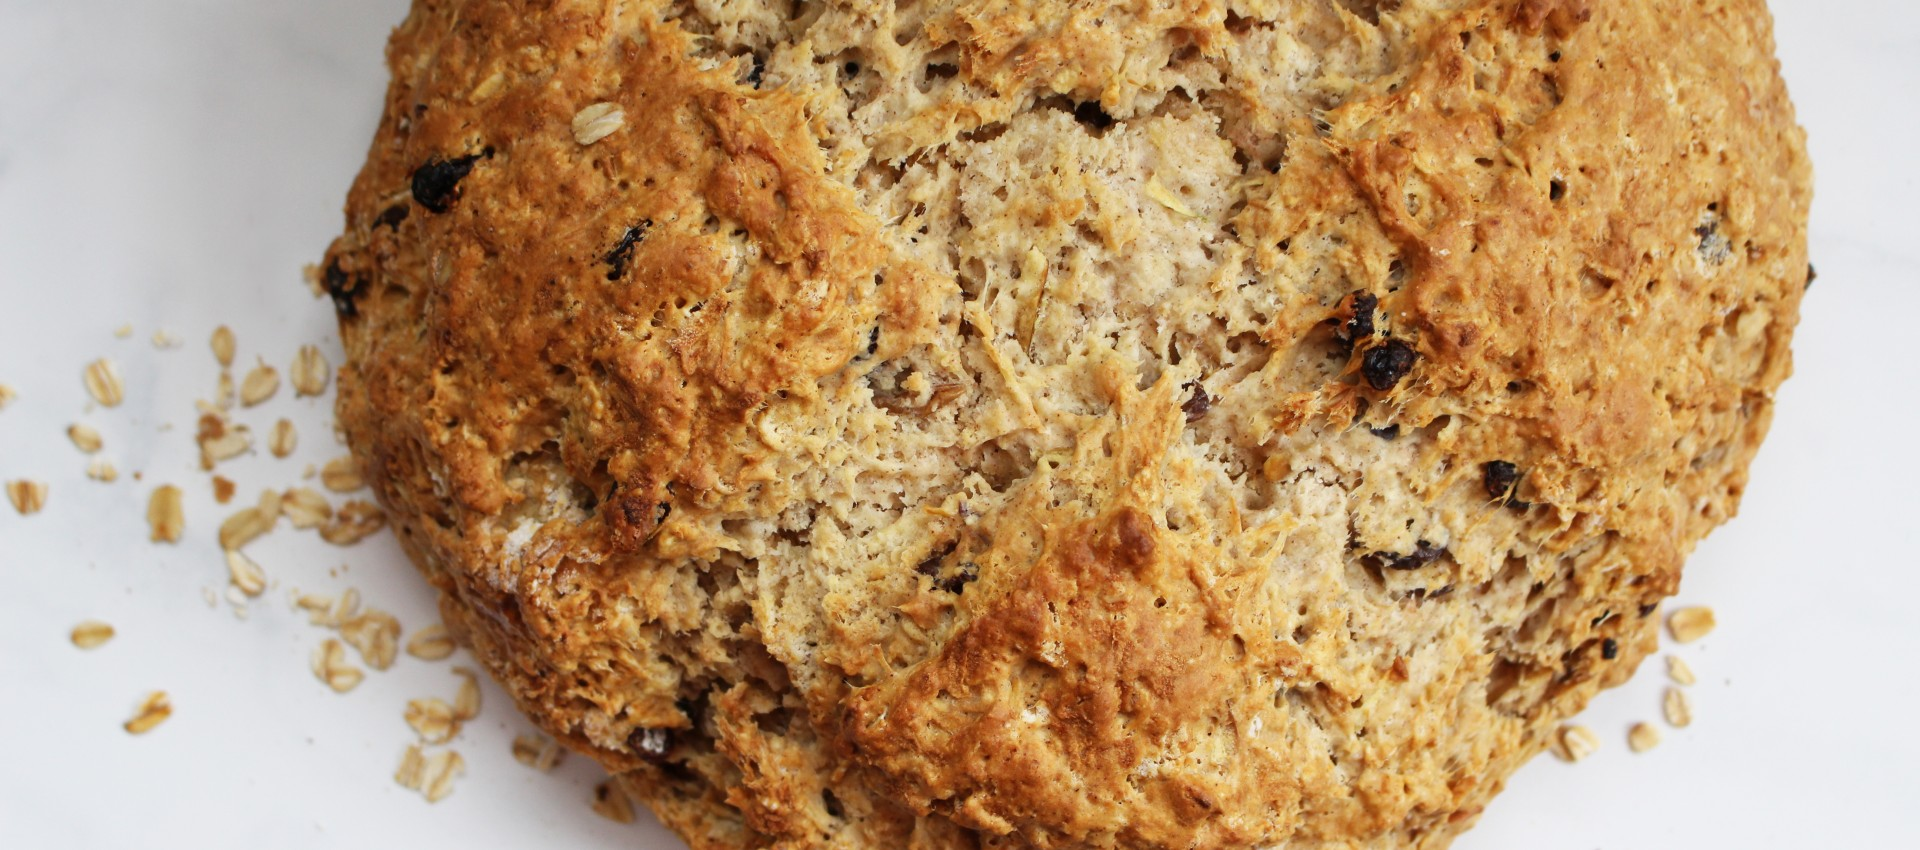 Cinnamon Raisin Apple Irish Soda Bread 3